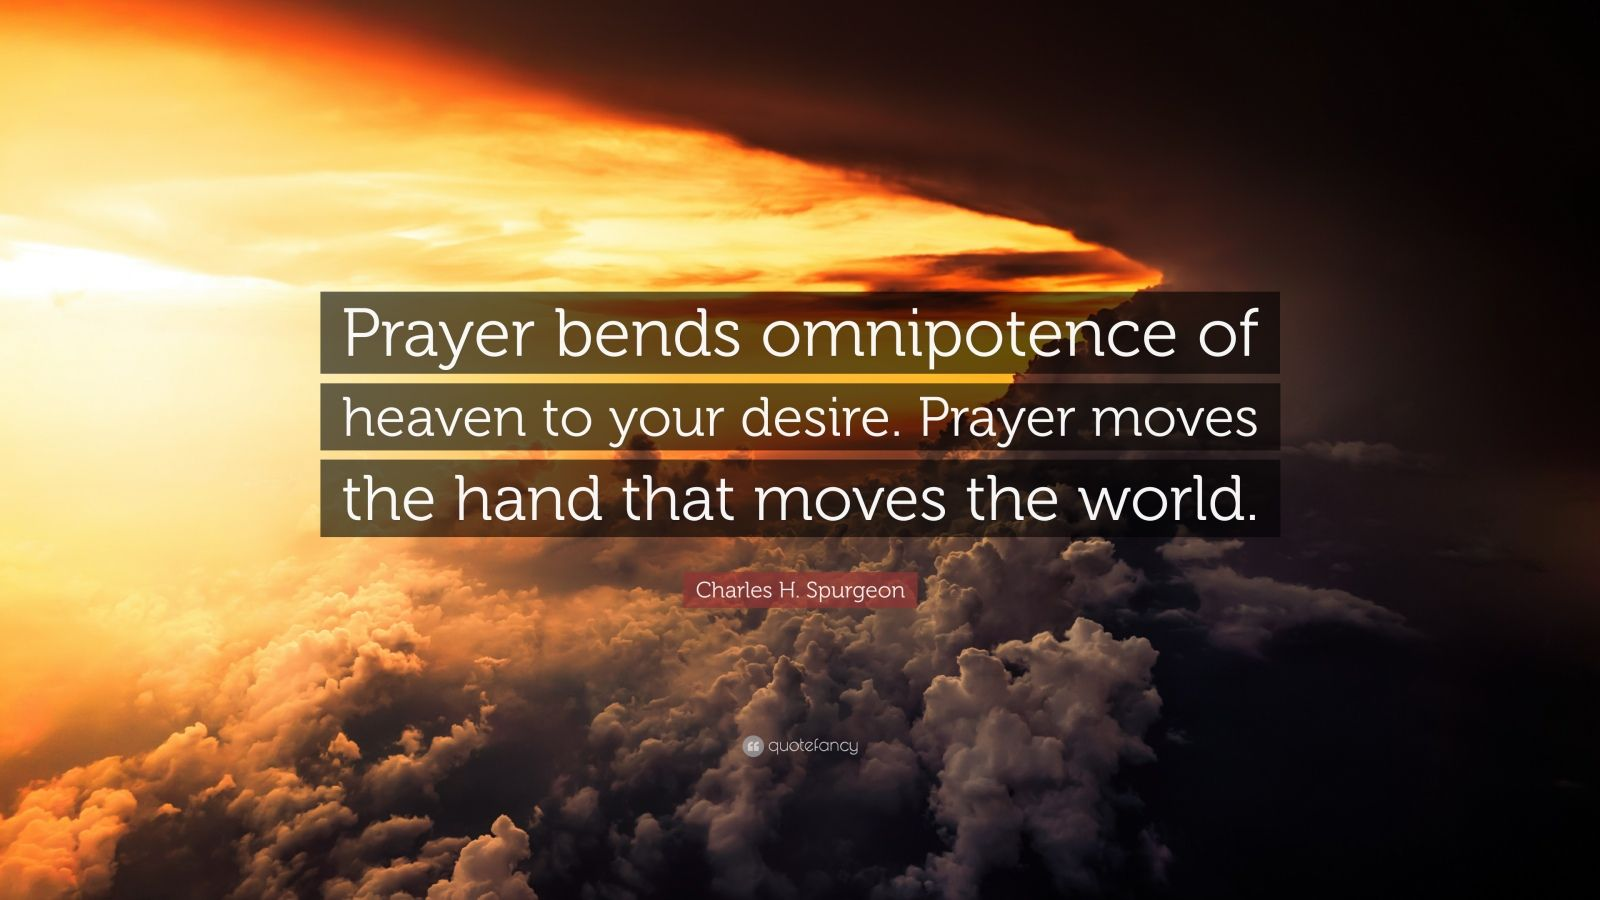 """Charles H. Spurgeon Quote: """"Prayer bends omnipotence of heaven to your desire. Prayer moves the hand that moves the world."""""""